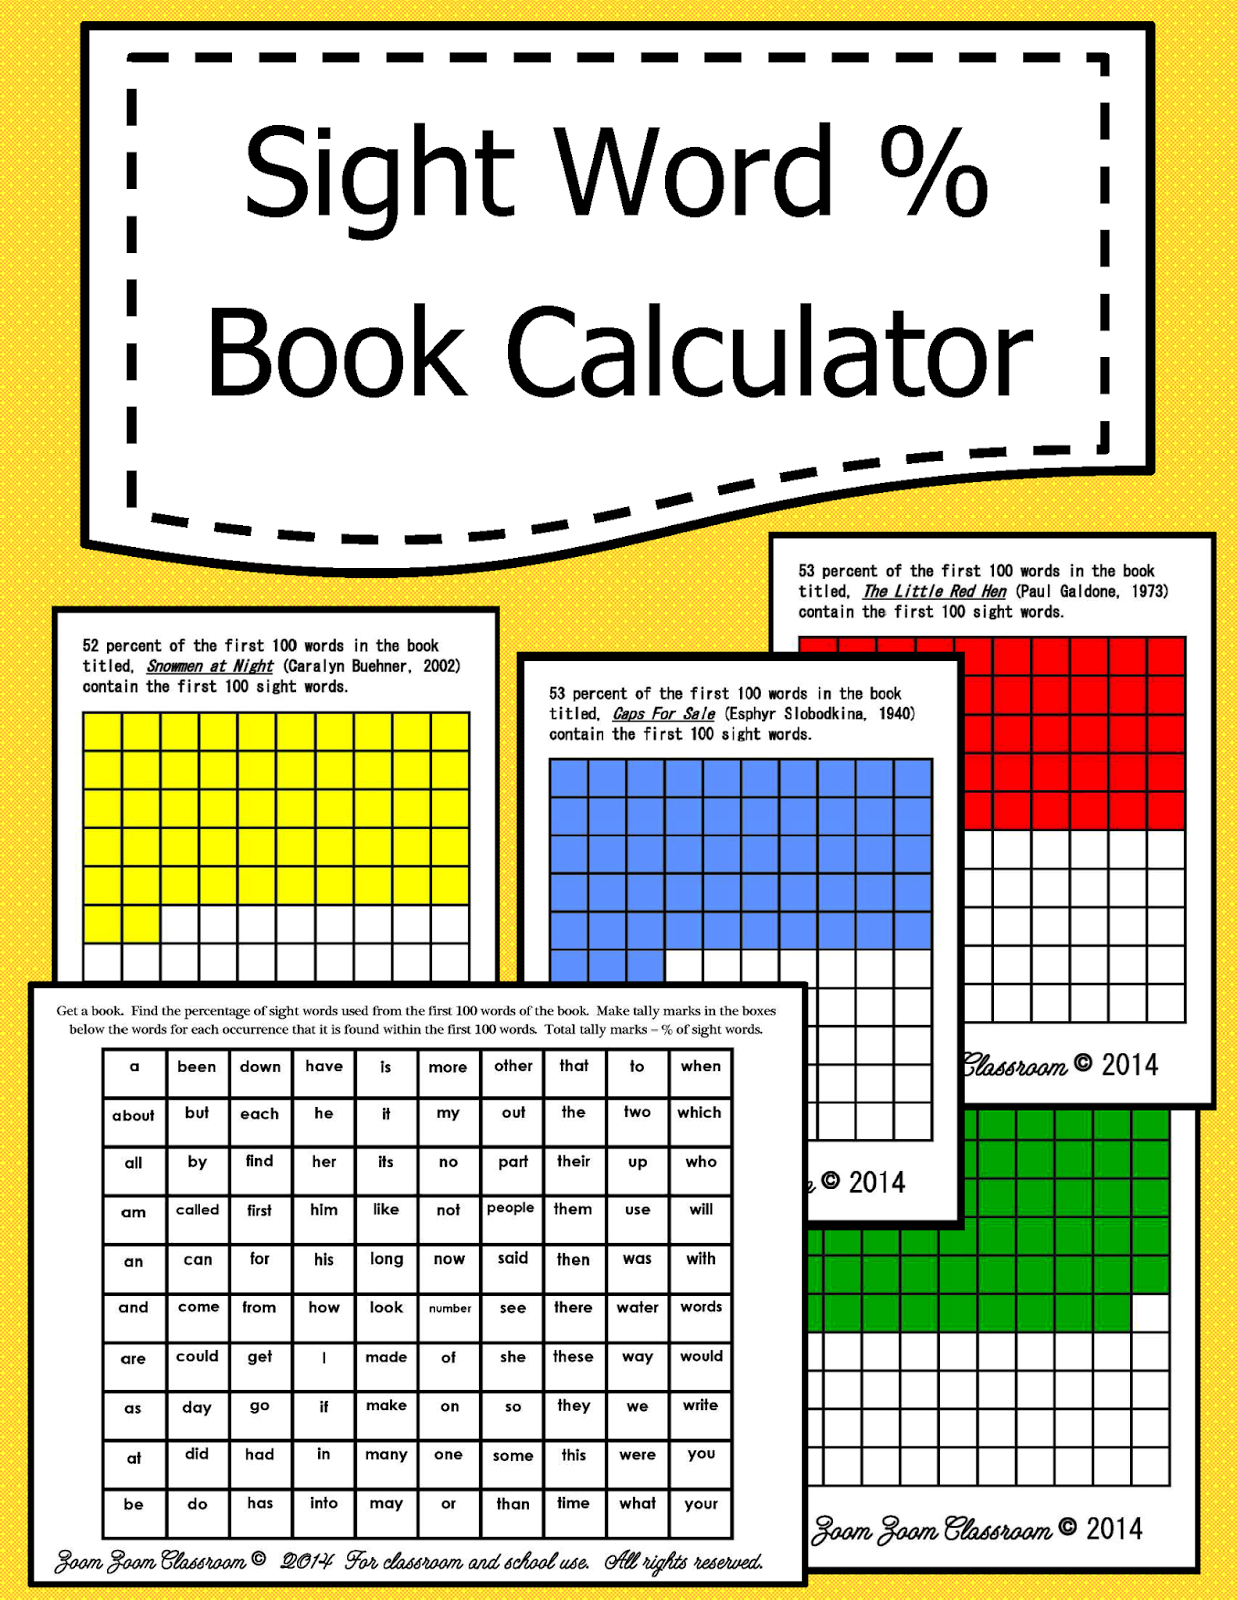 http://www.teacherspayteachers.com/Product/Sight-Word-Perecentage-Calculator-1340826